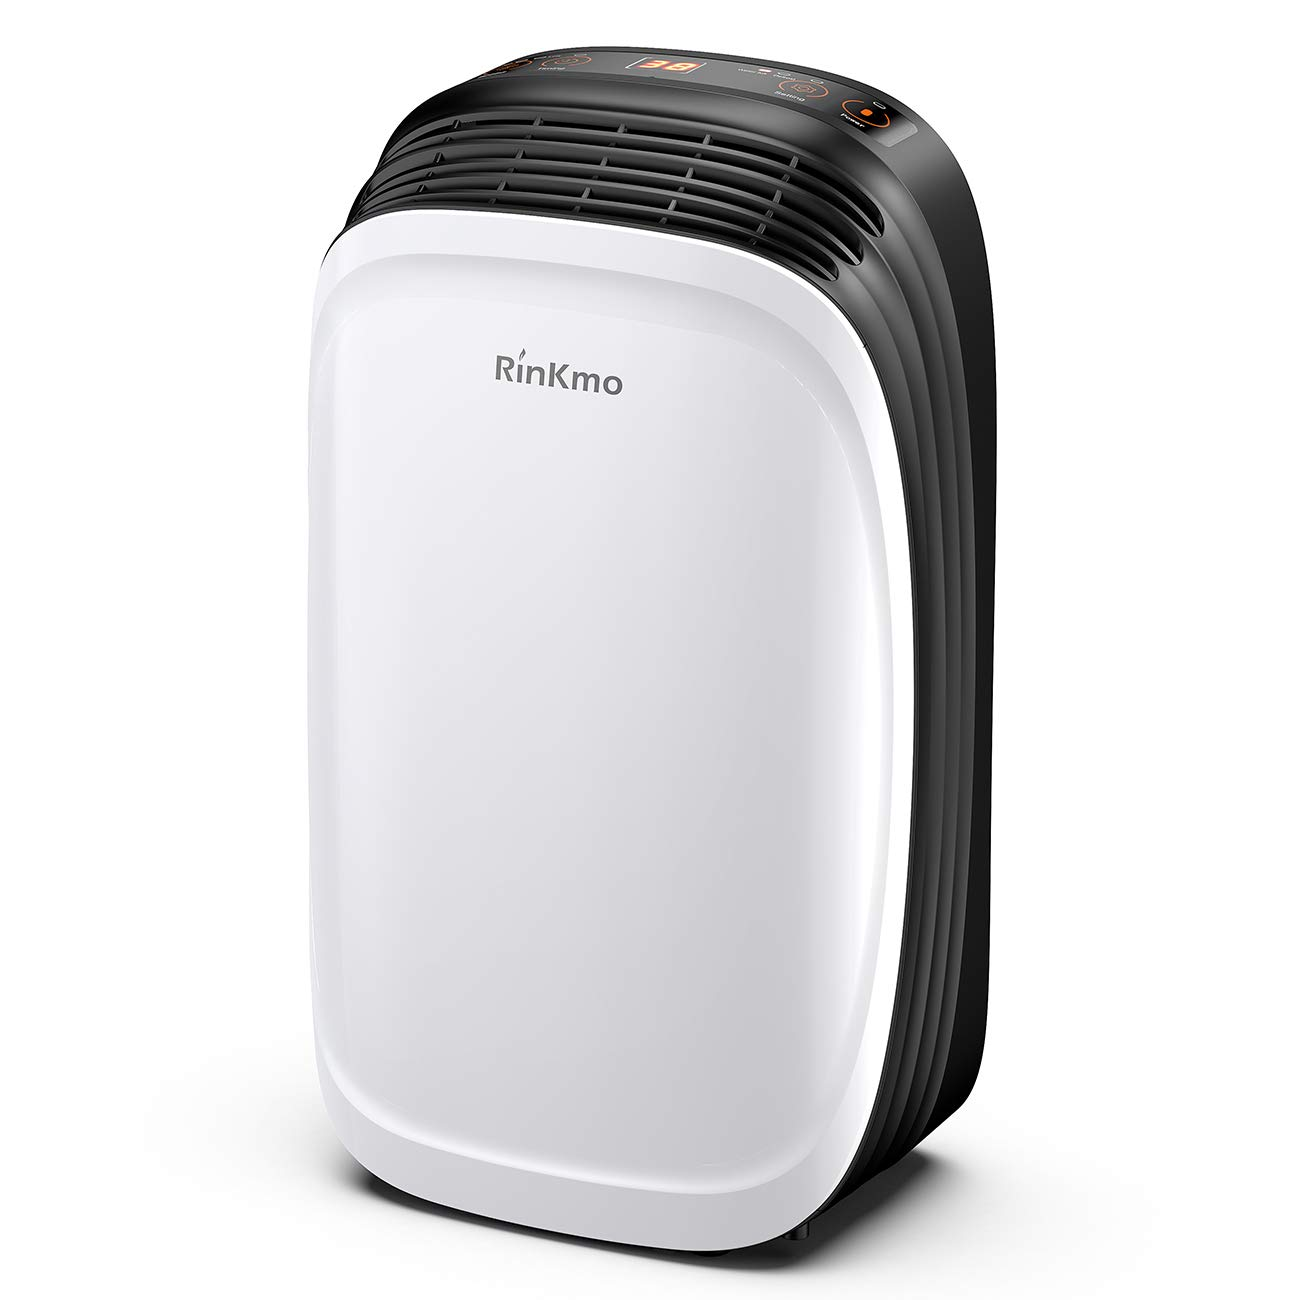 RINKMO 30 Pint Dehumidifier for Home Basements Bedroom Garage, Safe Mid Size Portable Dehumidifiers for Medium Spaces up to 1050 Sq Ft with Continuous Drain Hose Outlet to Reduce Moisture by RINKMO